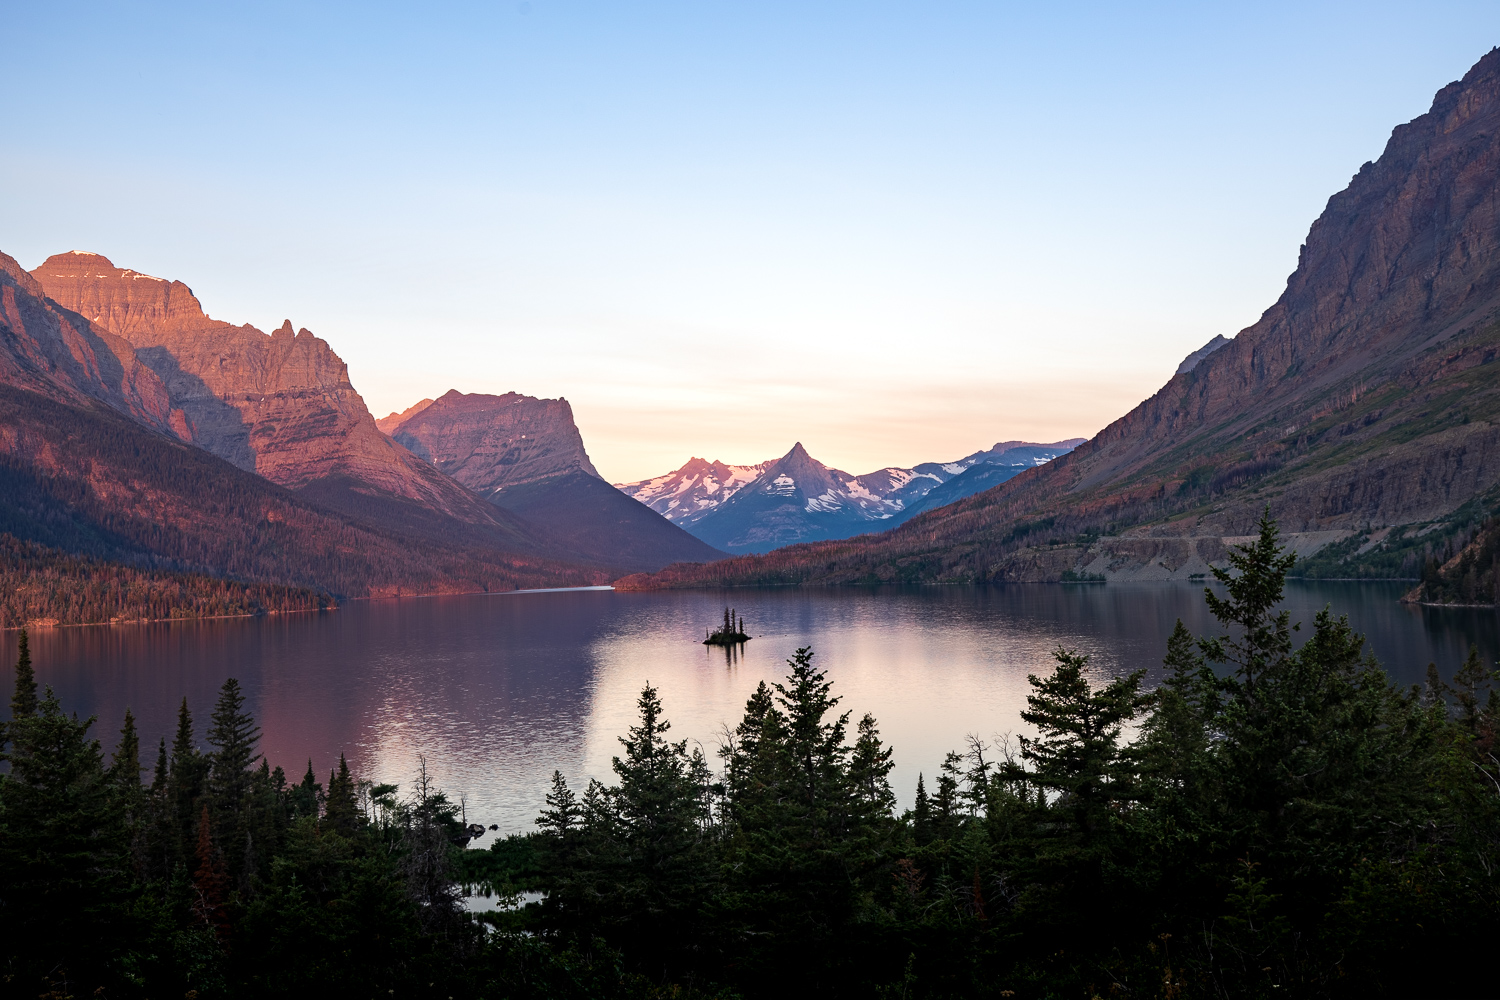 Sunrise over St. Mary Lake. Wild Goose Island is visible at the center of the lake.